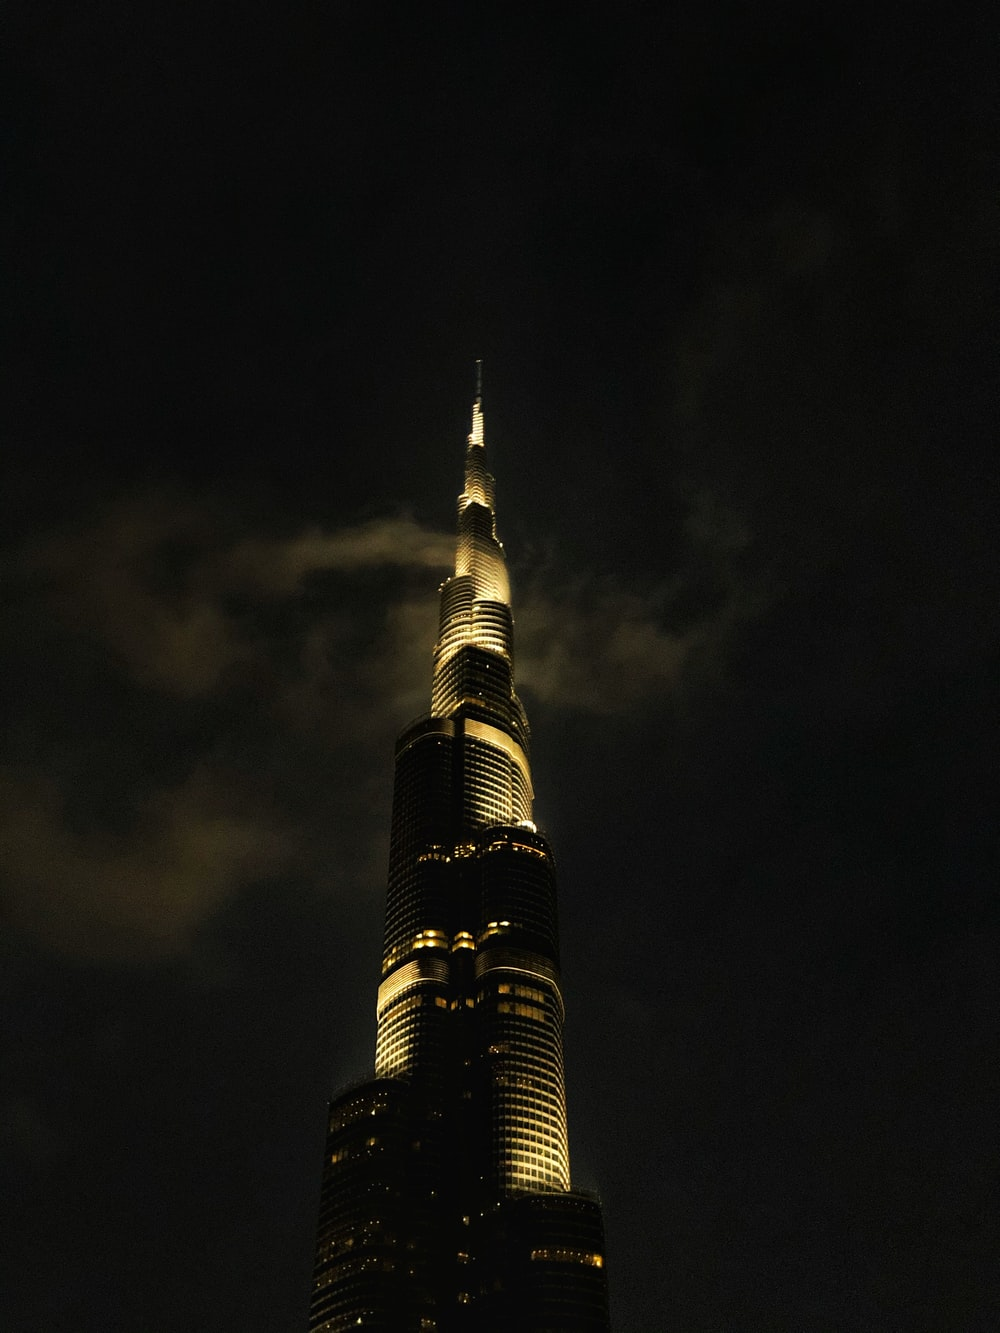 silhouette of building during nighttime